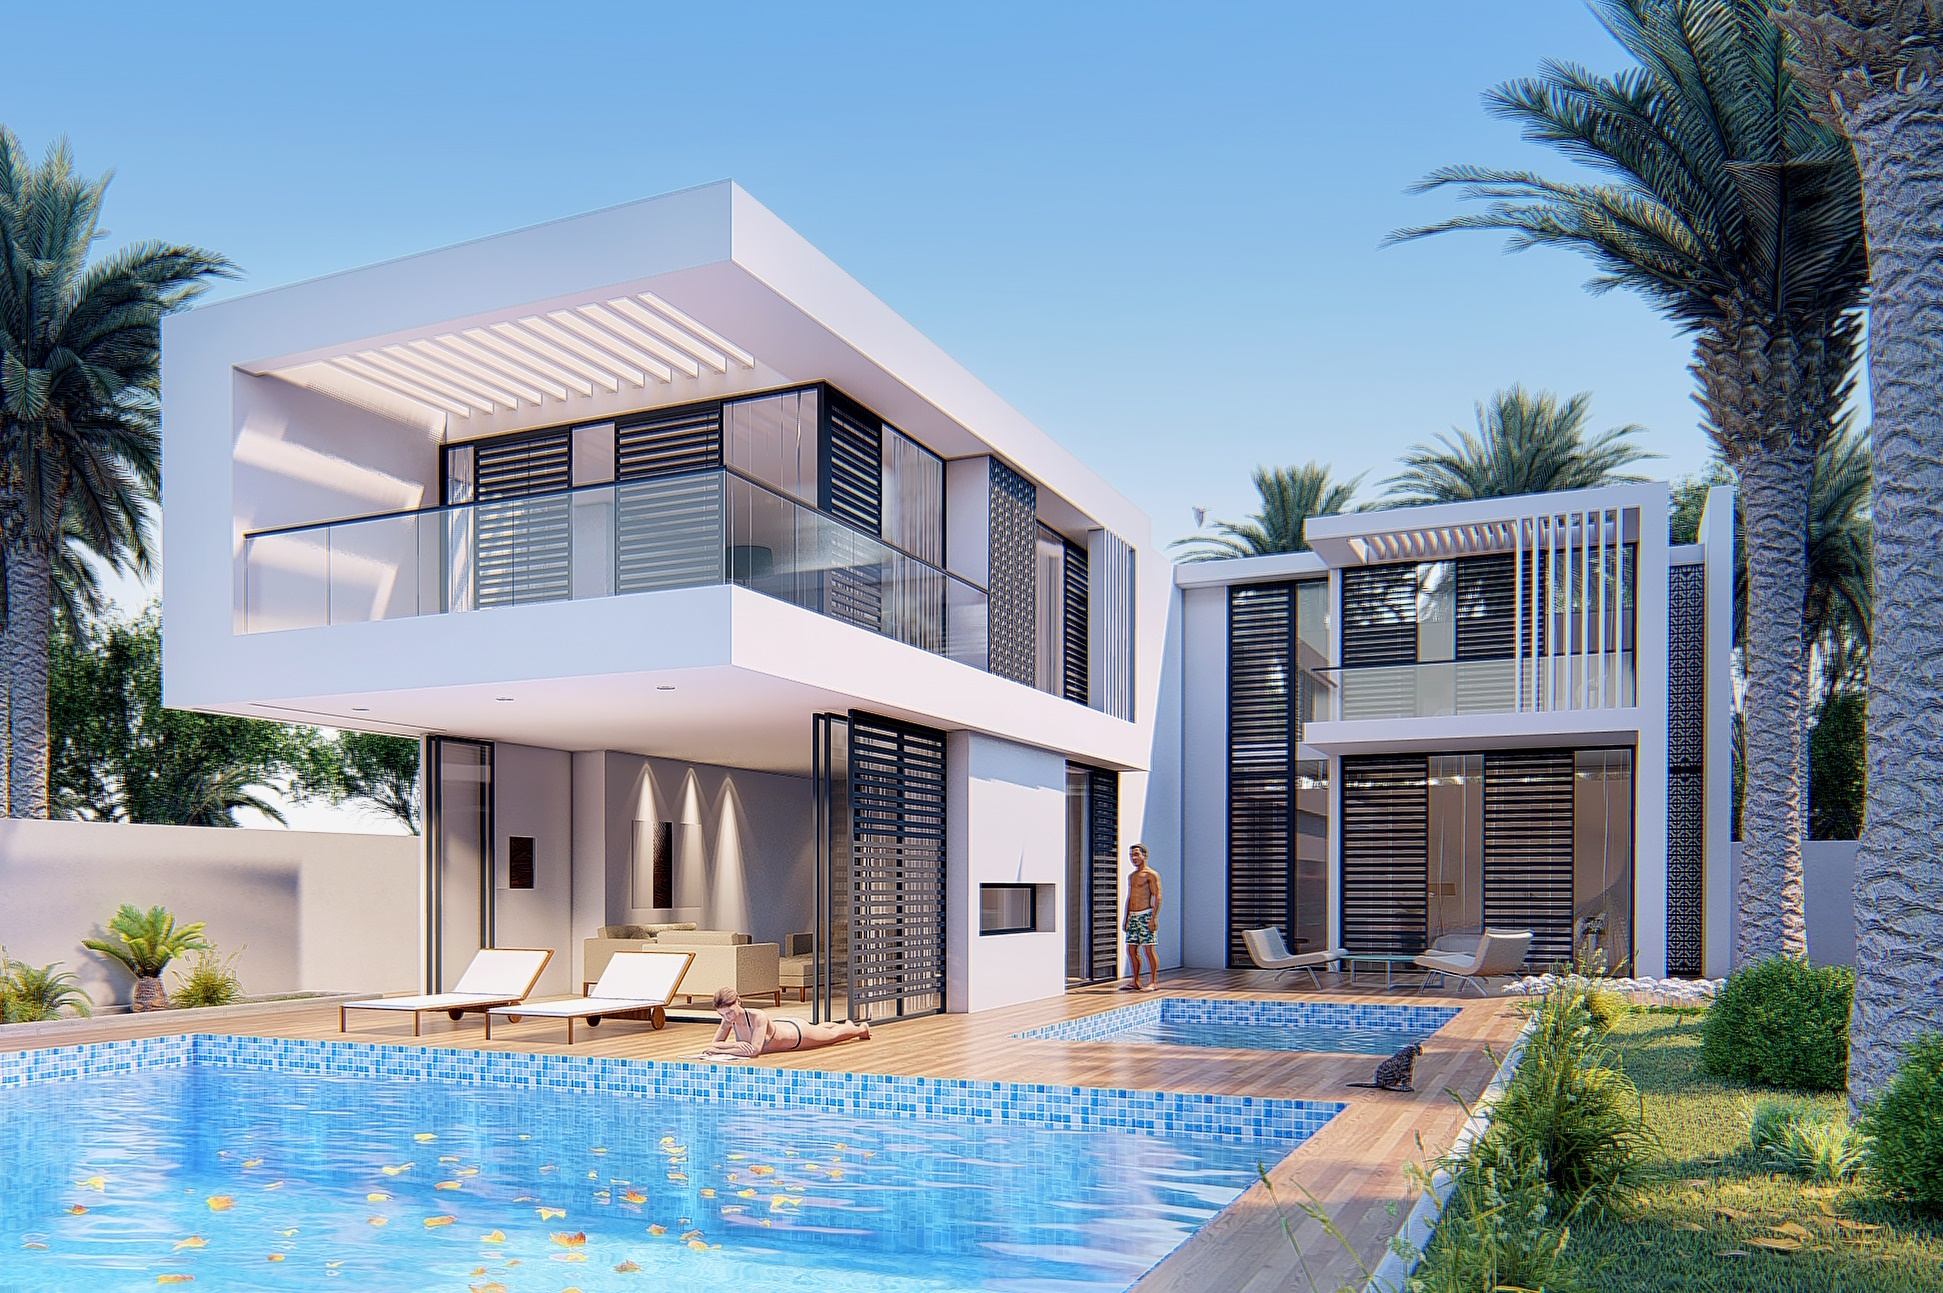 Lumion tutorial render Villa from file 3dsmax